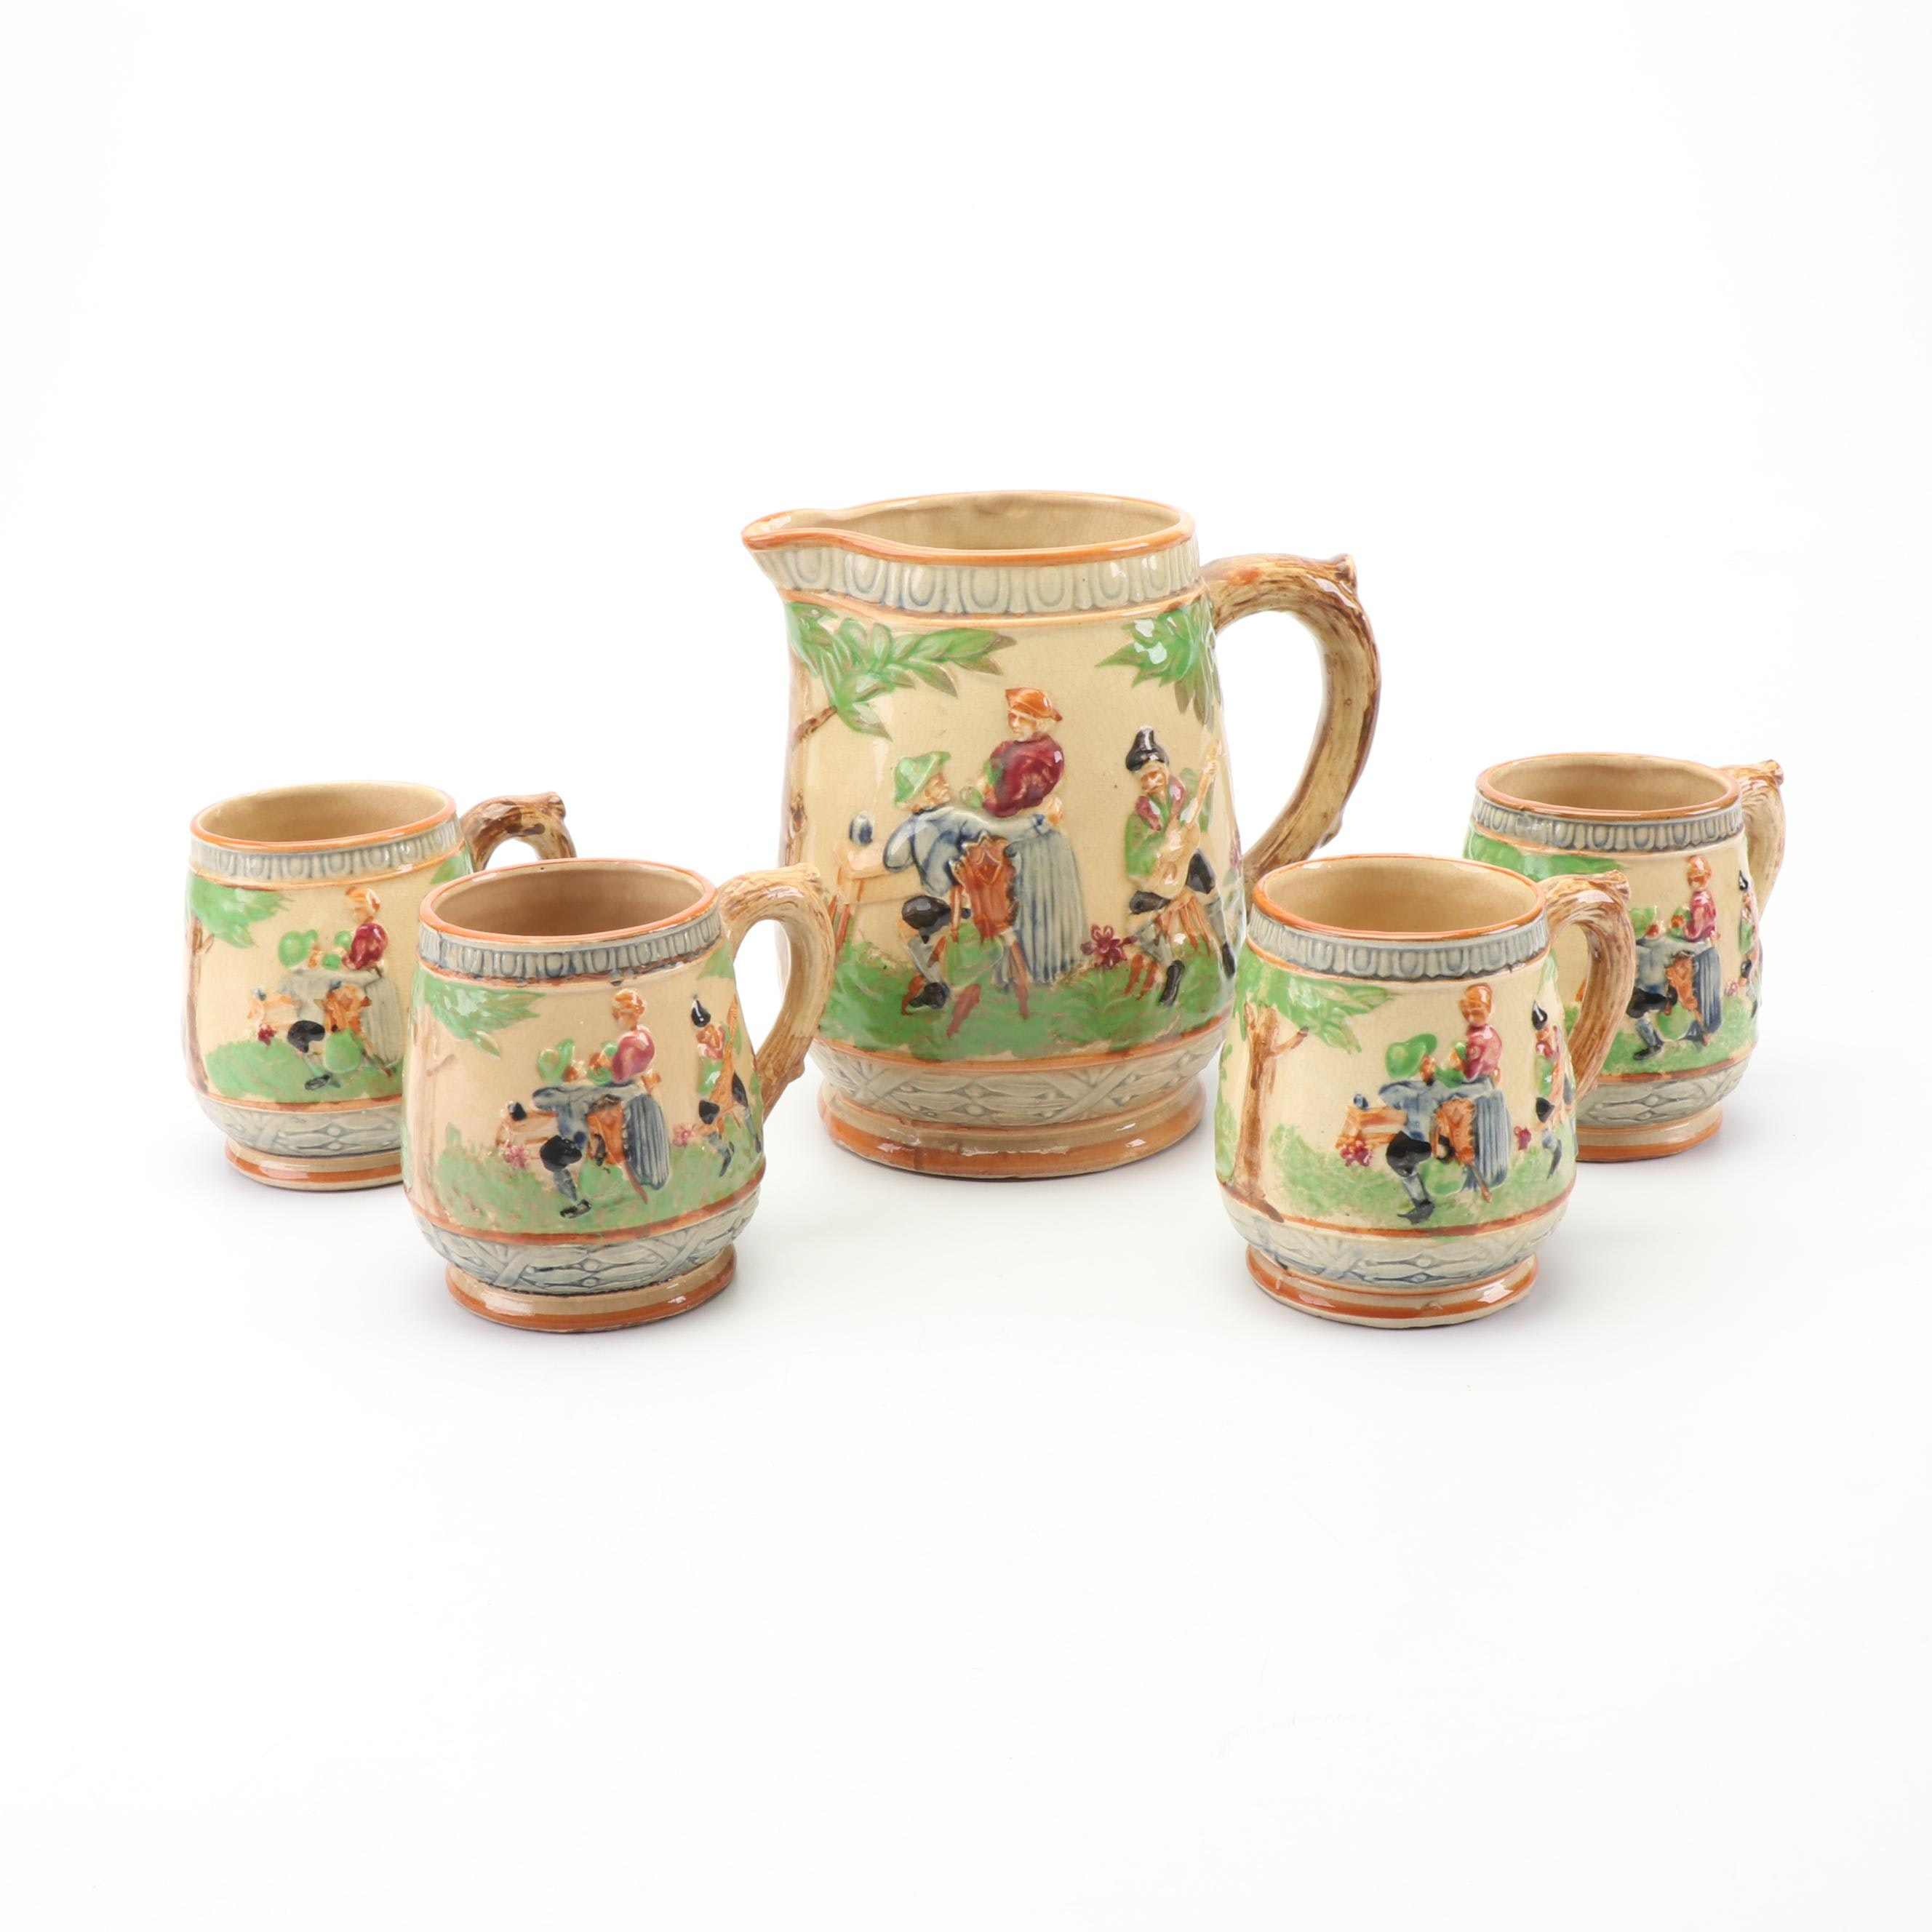 Vintage Japanese Ceramic Pitcher and Mugs